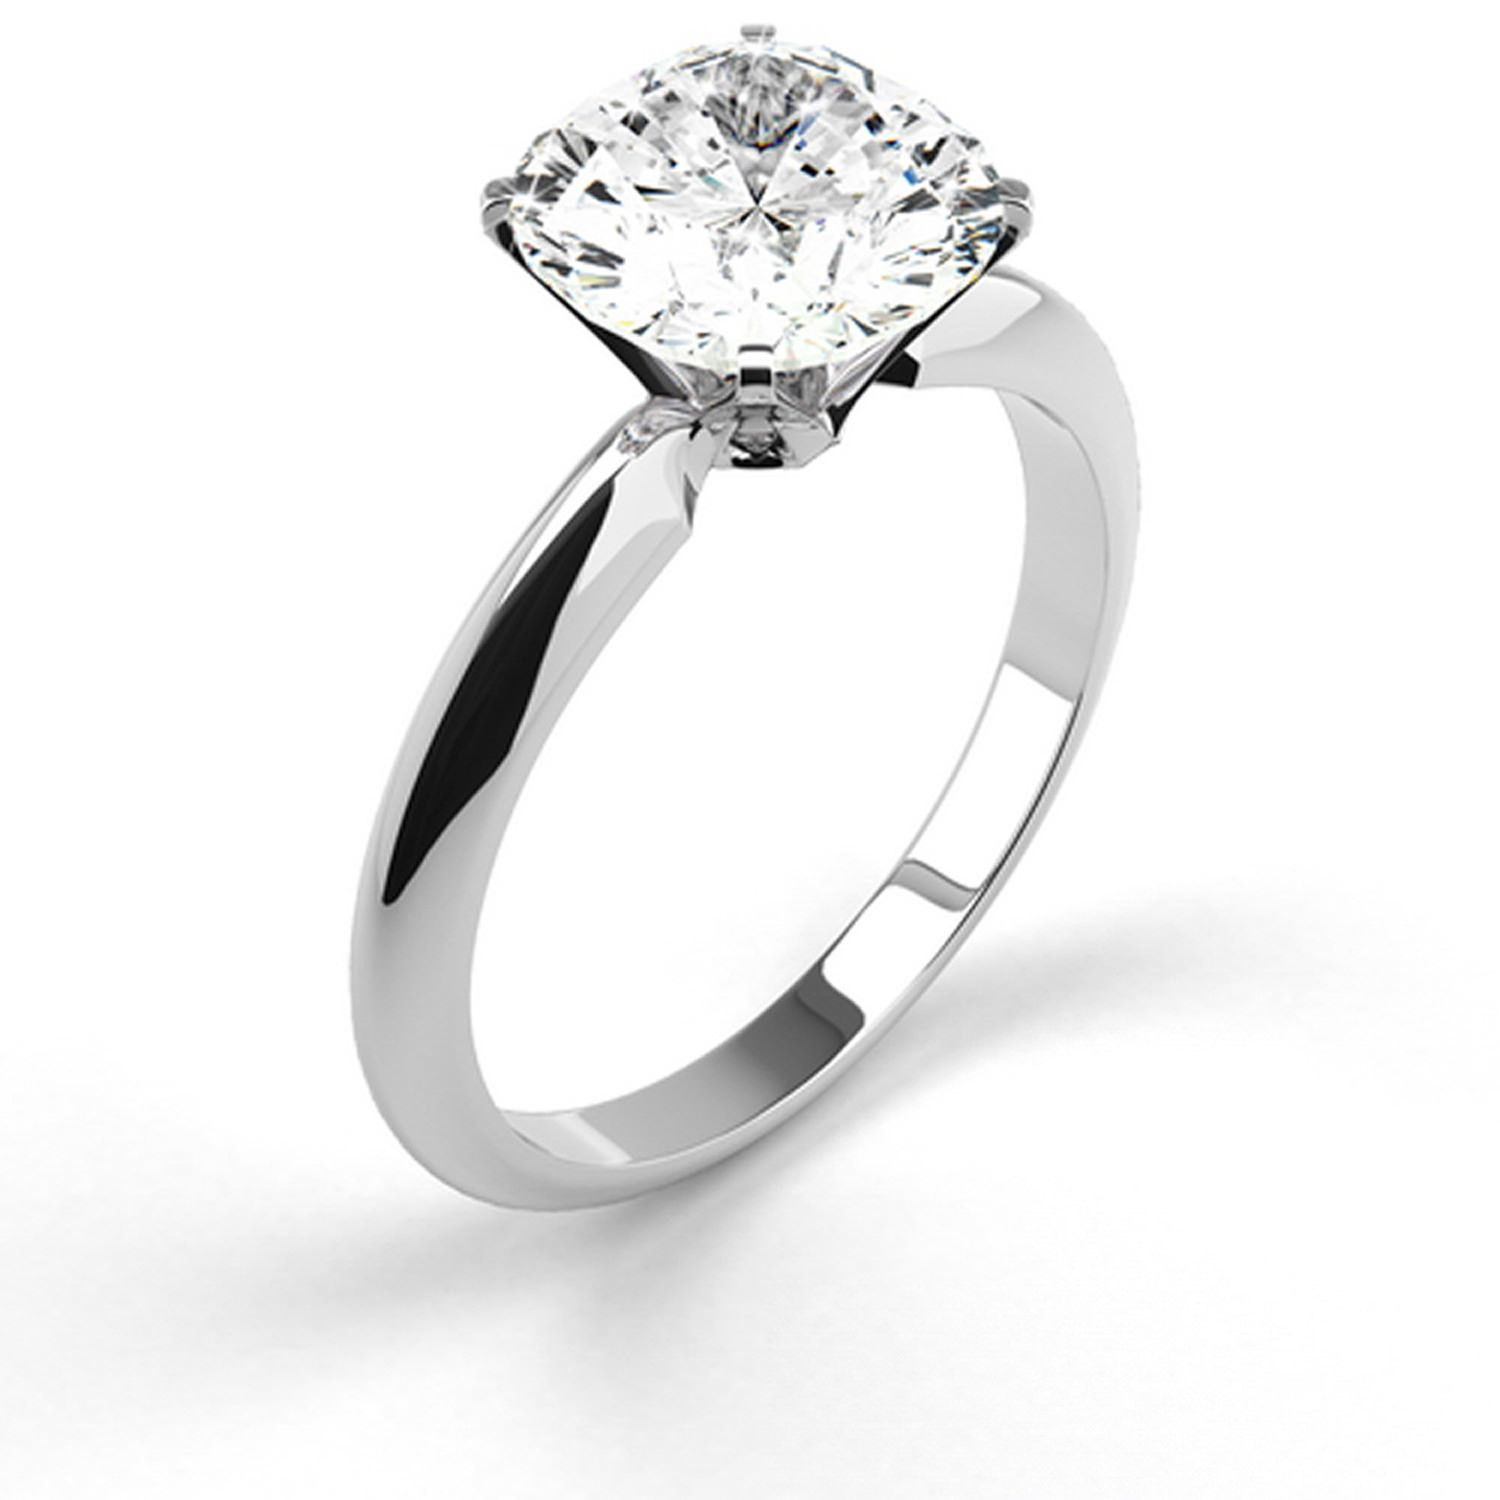 jewellery jewellry website us best rings luxury wedding settings ring diamond of types pics new engagement attachment